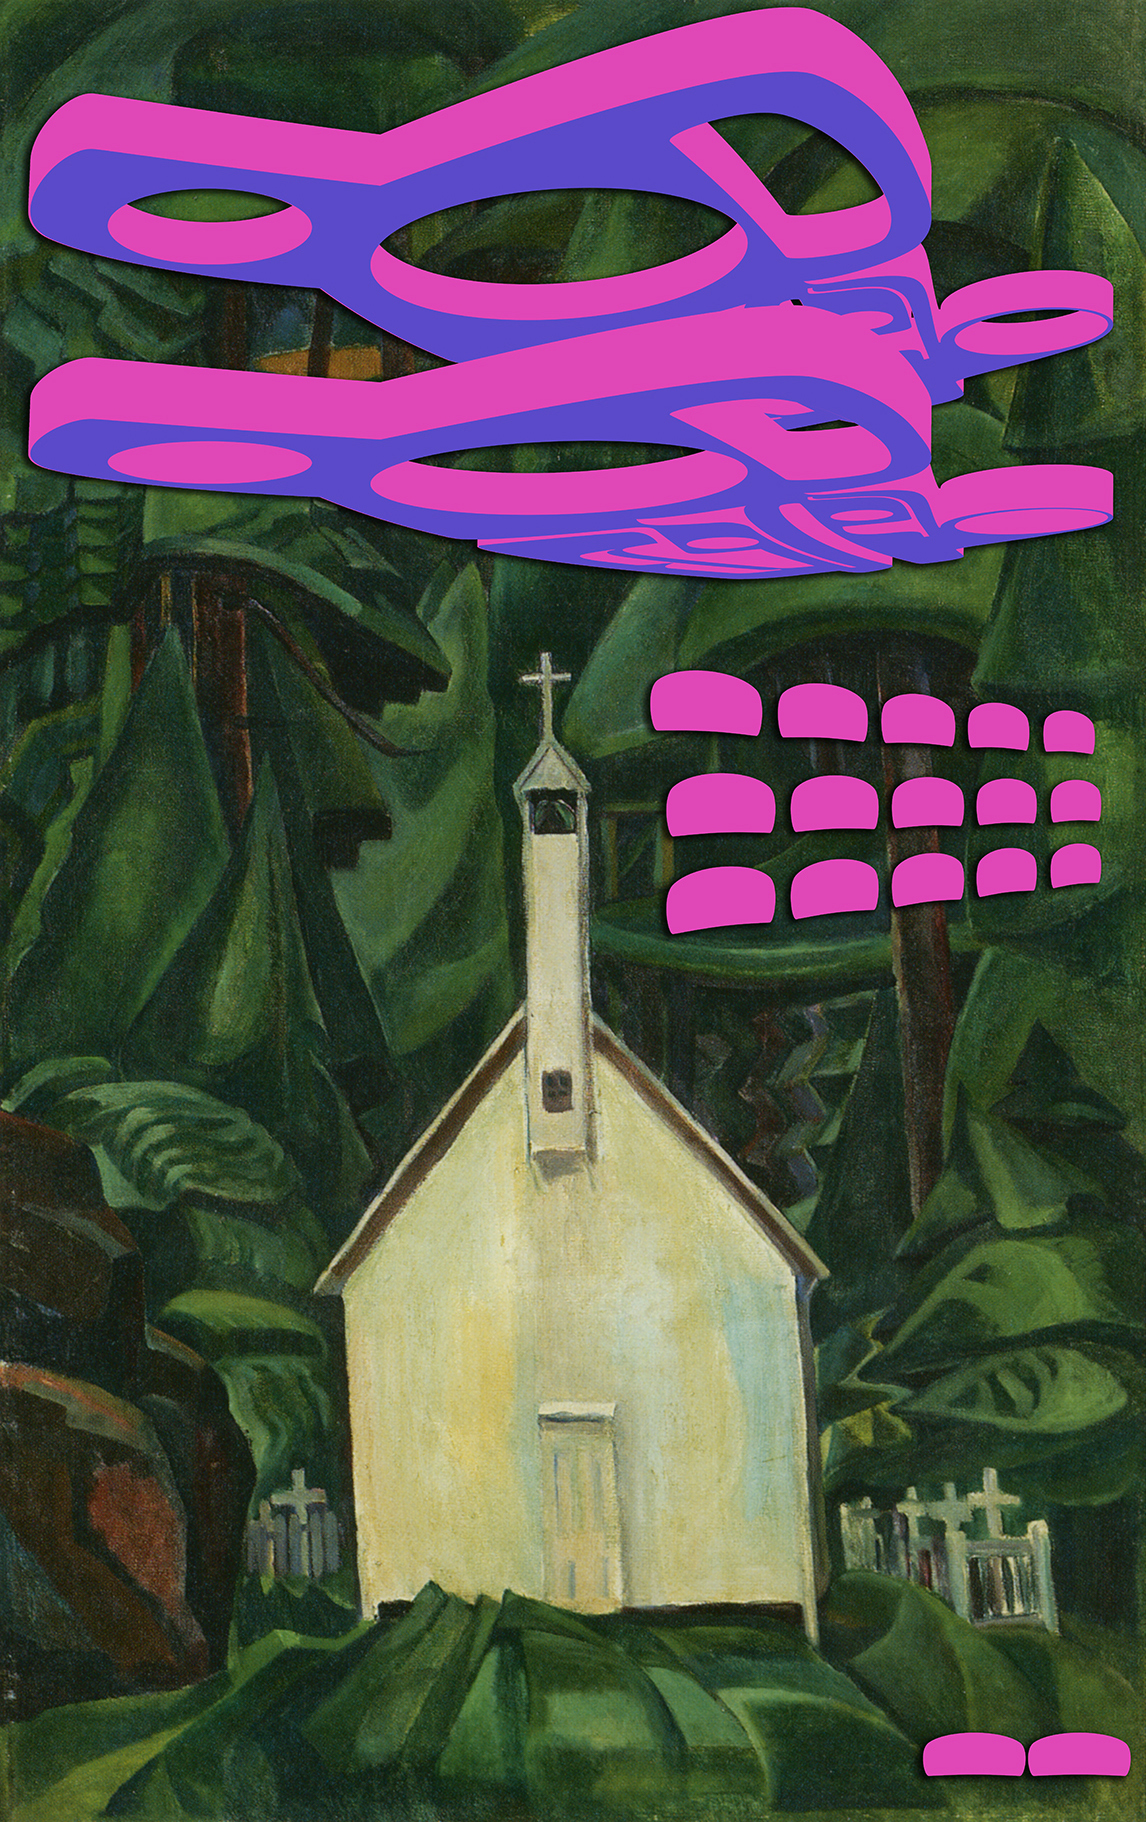 At the heart of a lush forest, a humble little church in shades of cream occupies the centre of the image. Pink and violet fluorescent forms float above the structure, with two small interventions placed in the lower right area.